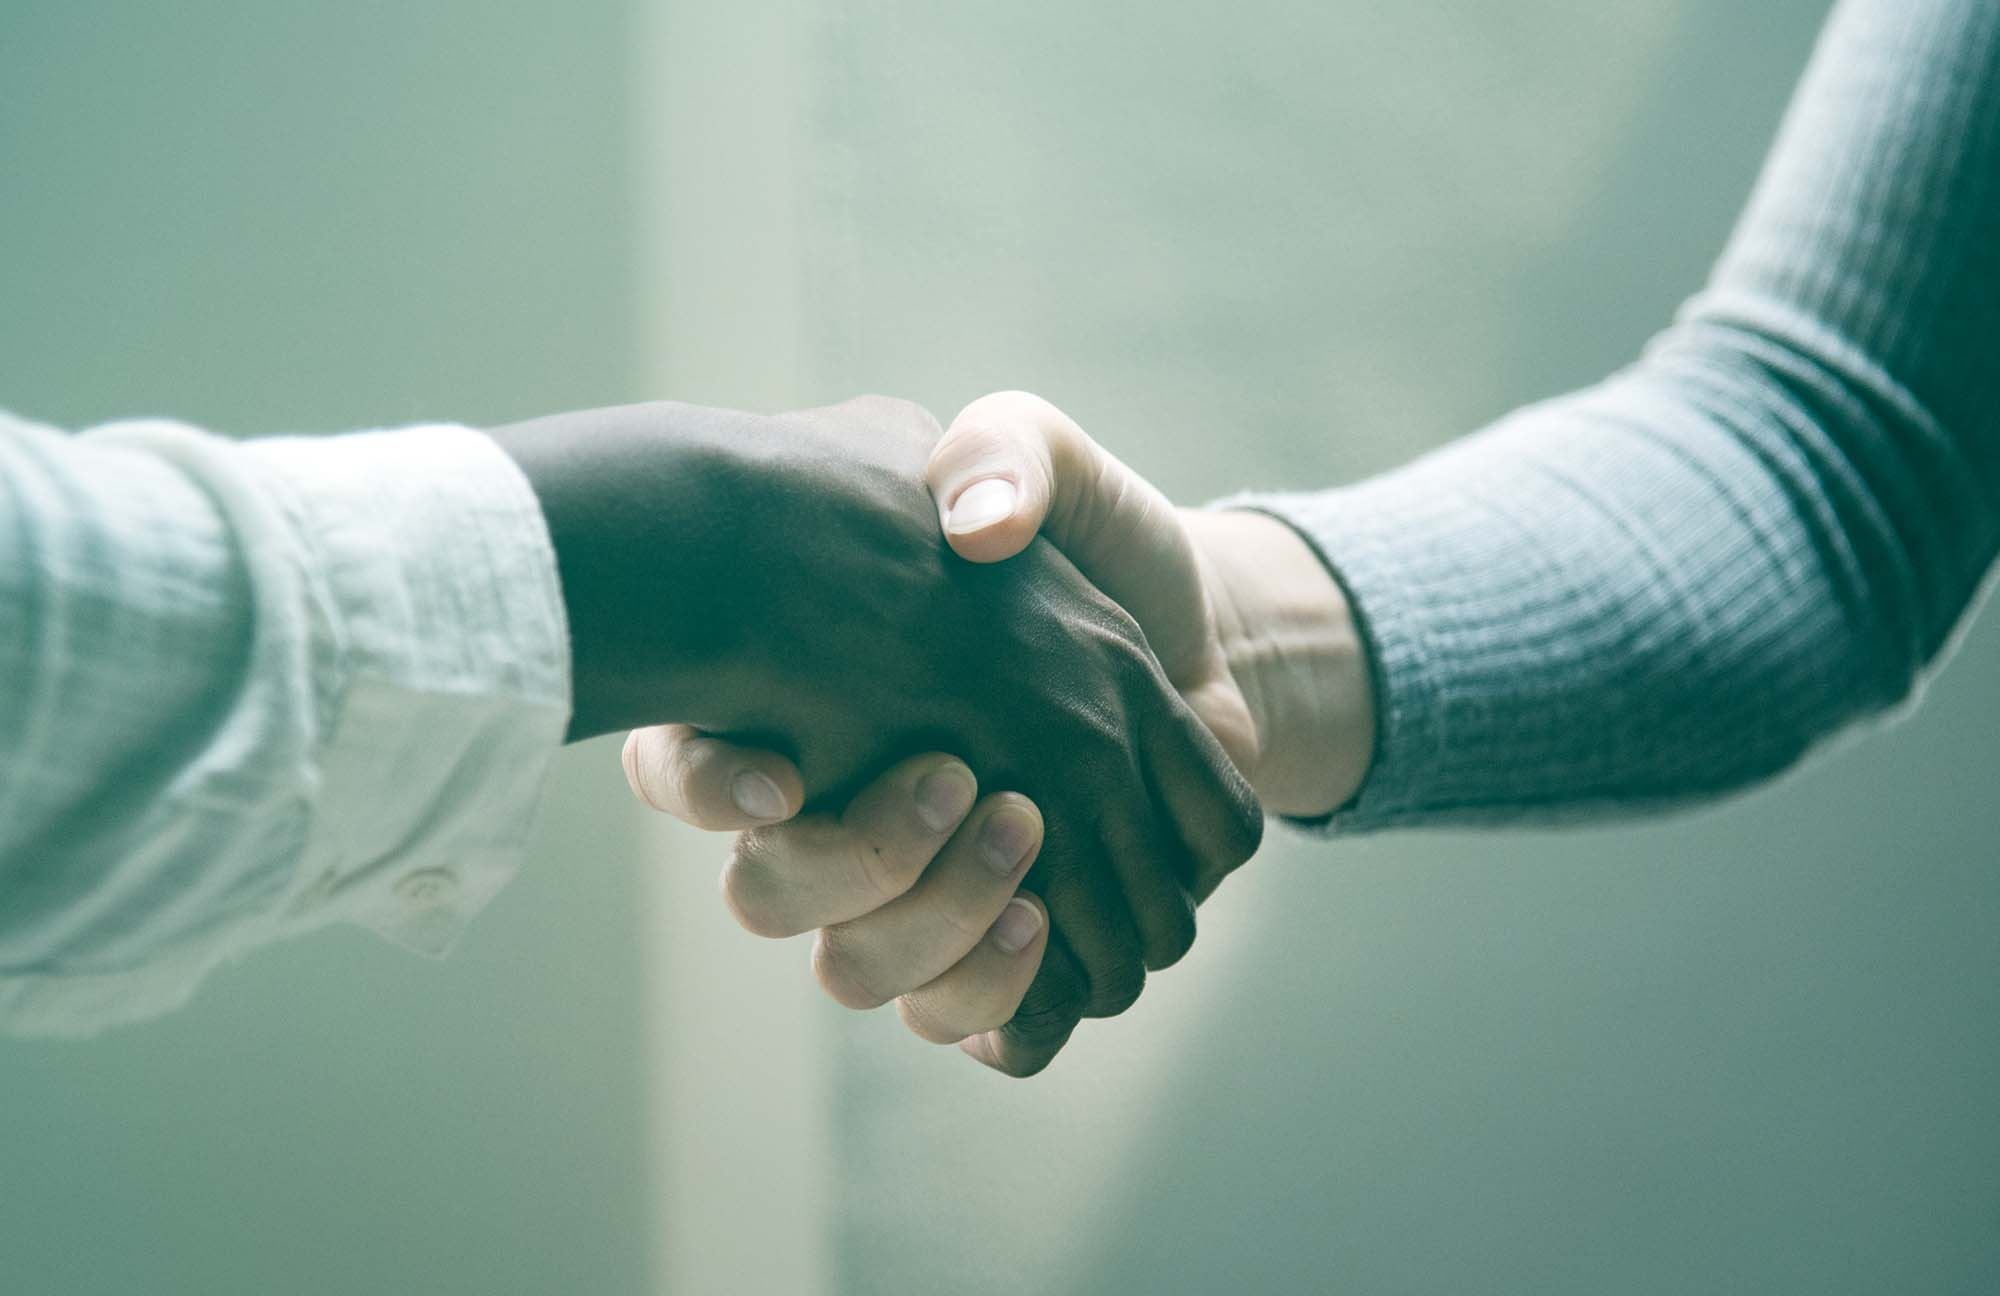 SIMCON  support and development collaborate closely